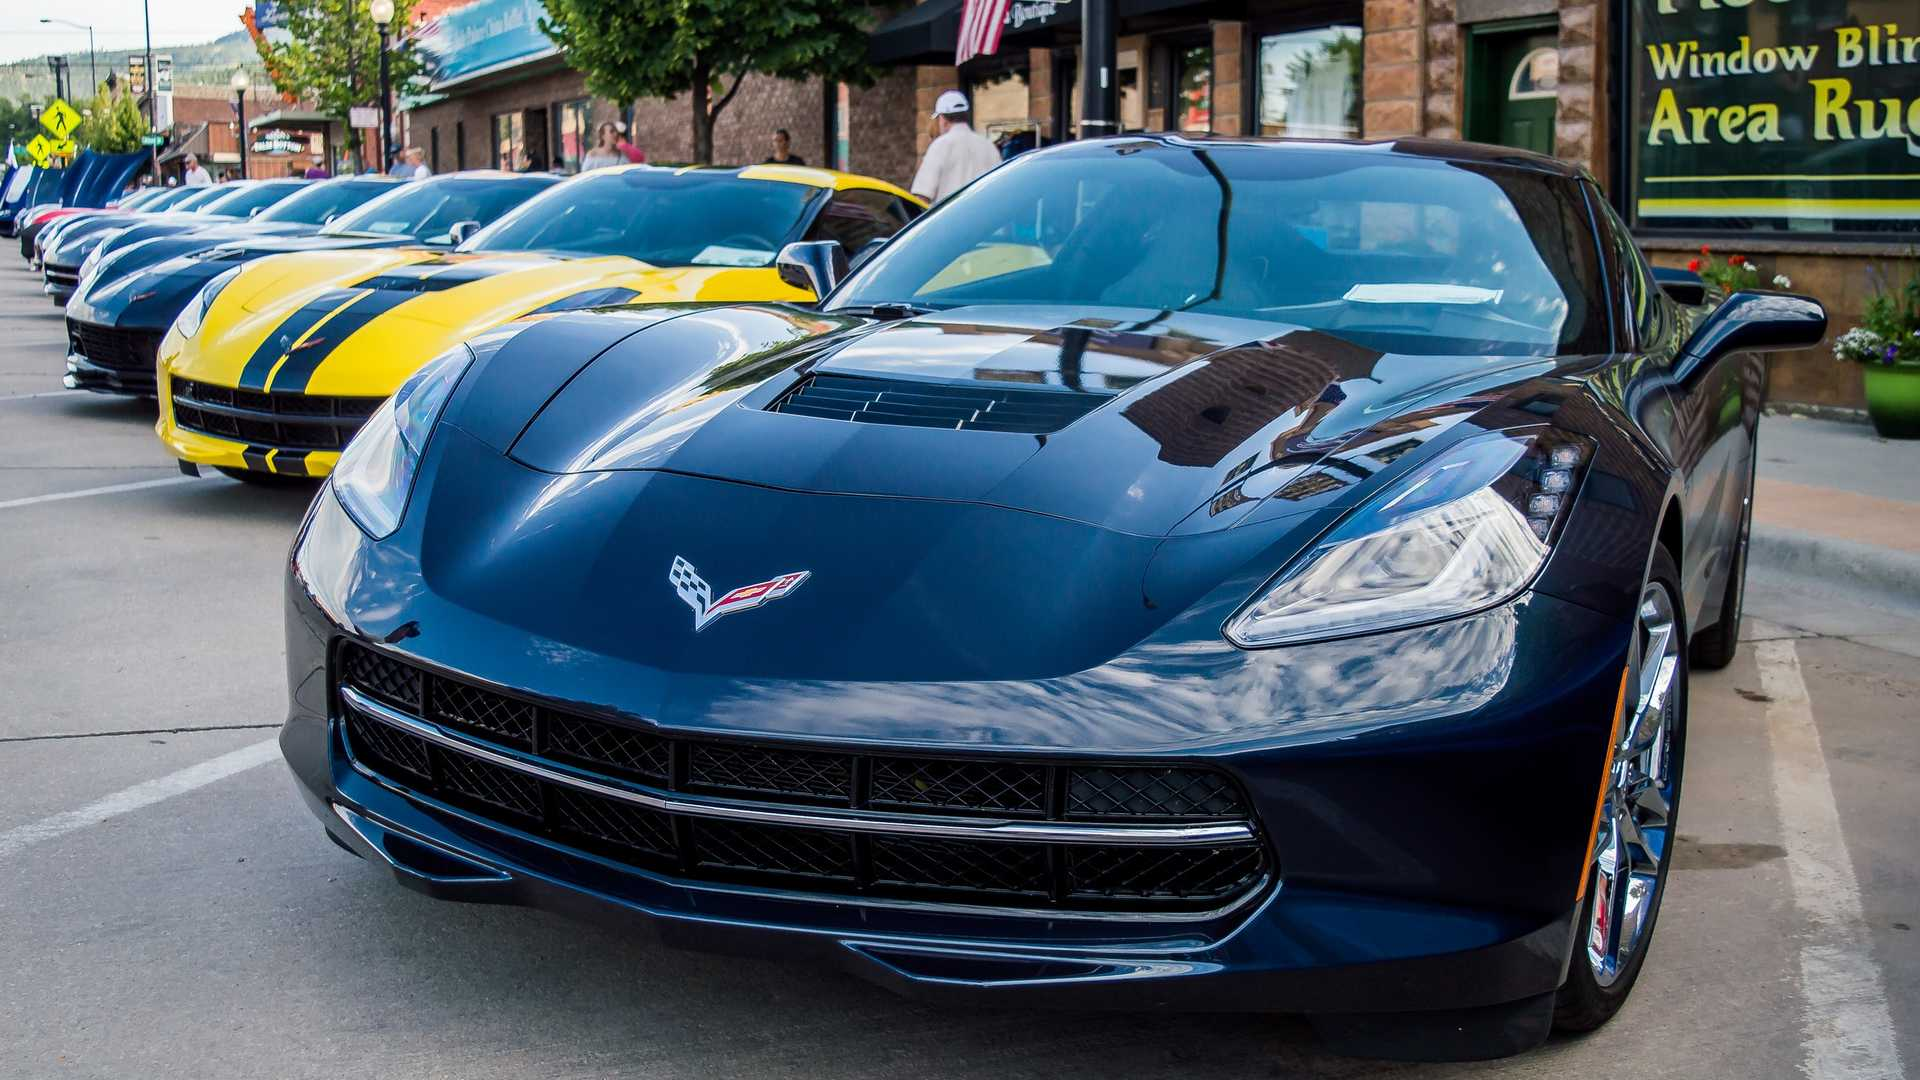 What Do Current Corvette Owners Think Of The New C8 Stingray?